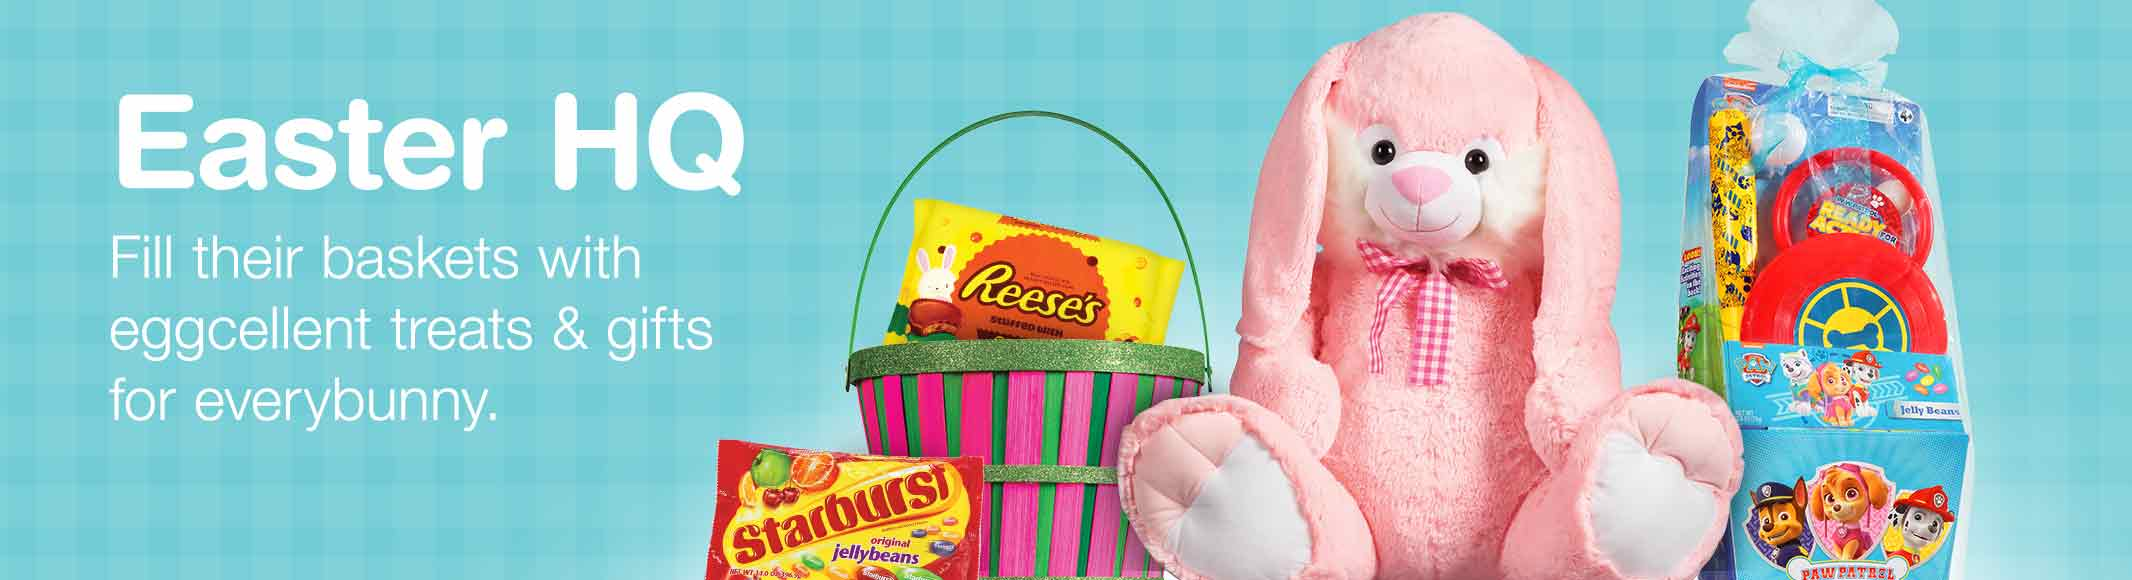 Easter walgreens easter hq fill their baskets with eggcellent treats gifts for everybunny negle Gallery